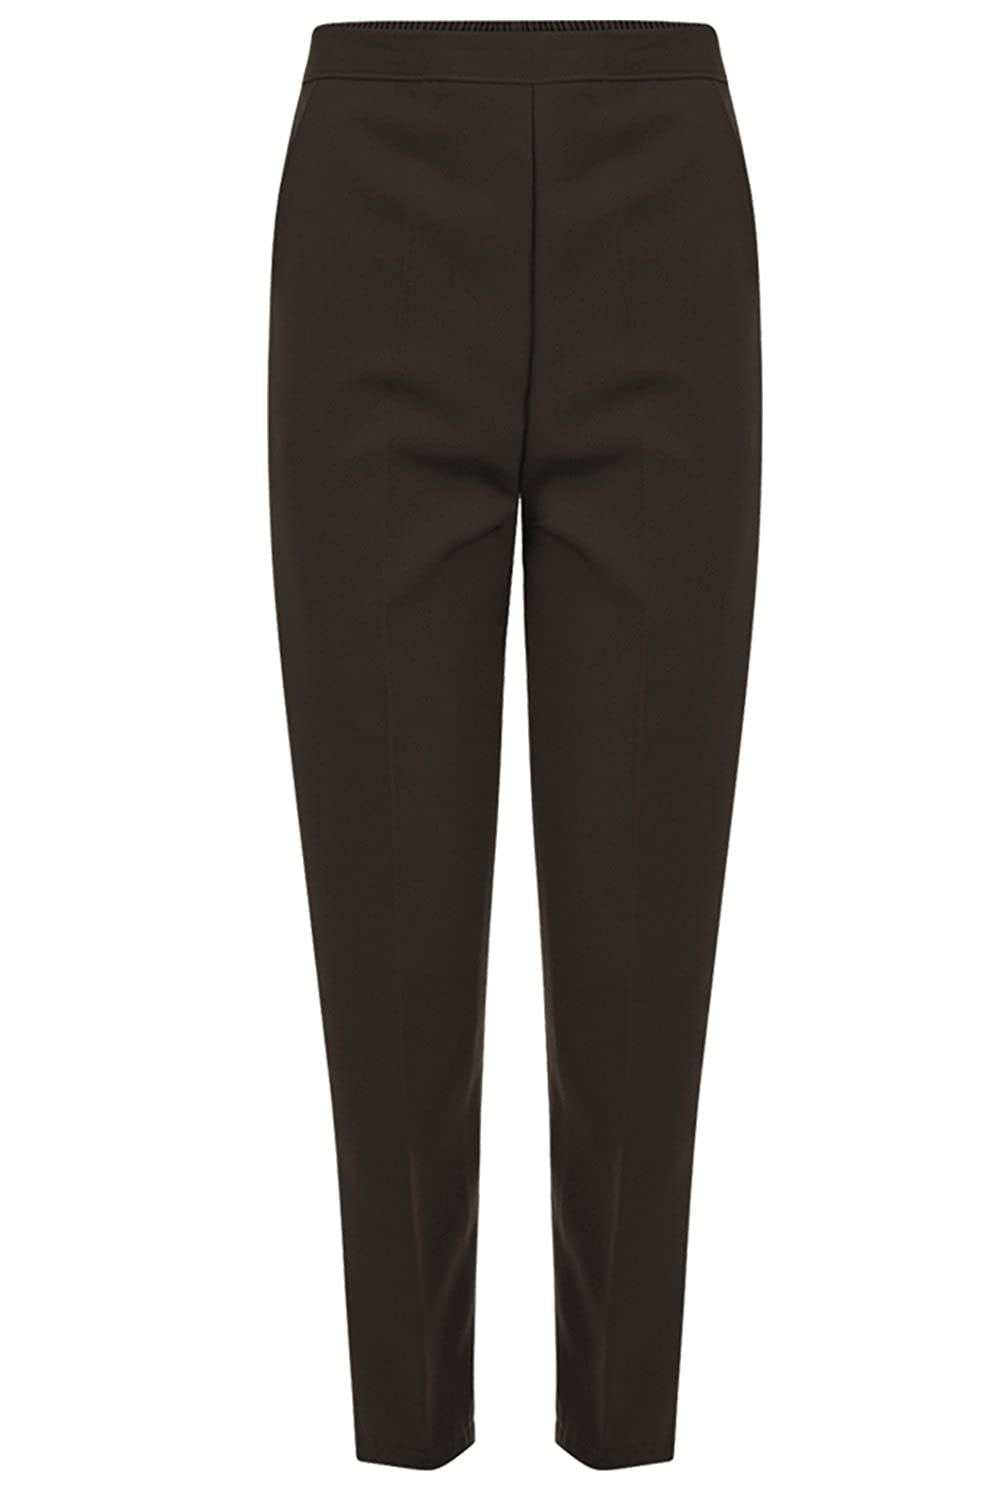 INDX-Clothing Ladies Womens Office Work Trousers Half Elasticated Stretch Half Elasticated Waist Formal Casual Pants with Pockets